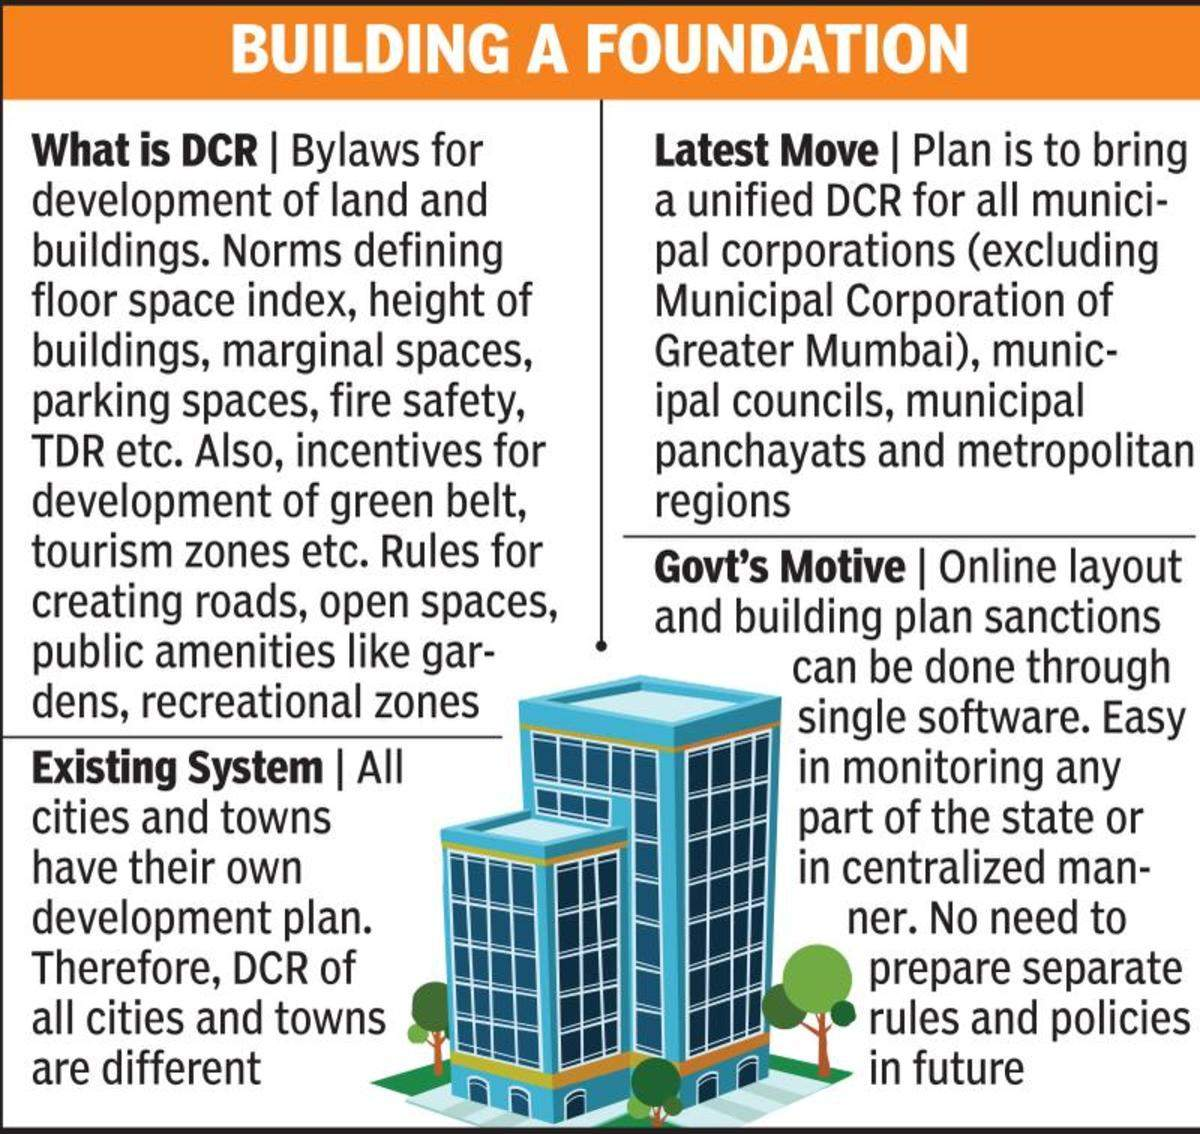 Govt plans single land bldg devpt rules for cities metro regions